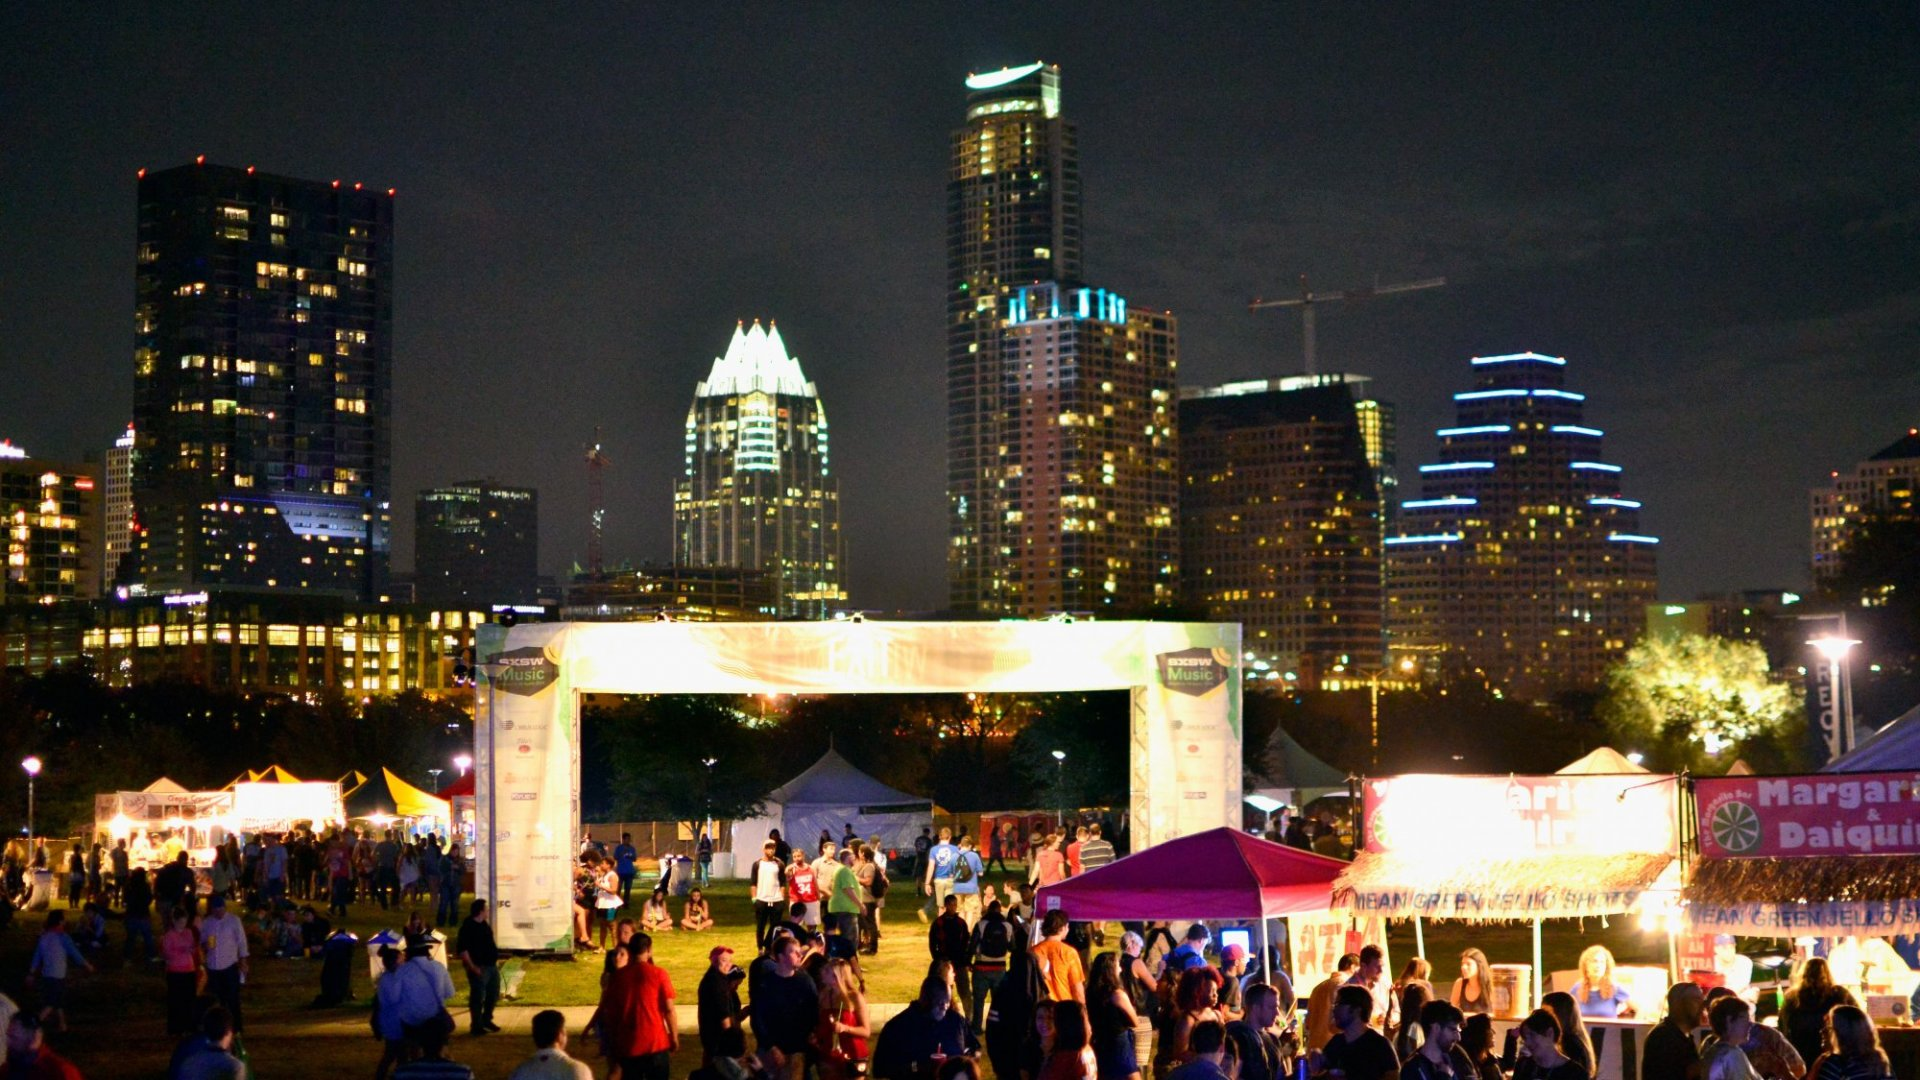 Flying Cars, Robot Petting Zoo: It's South by Southwest Time